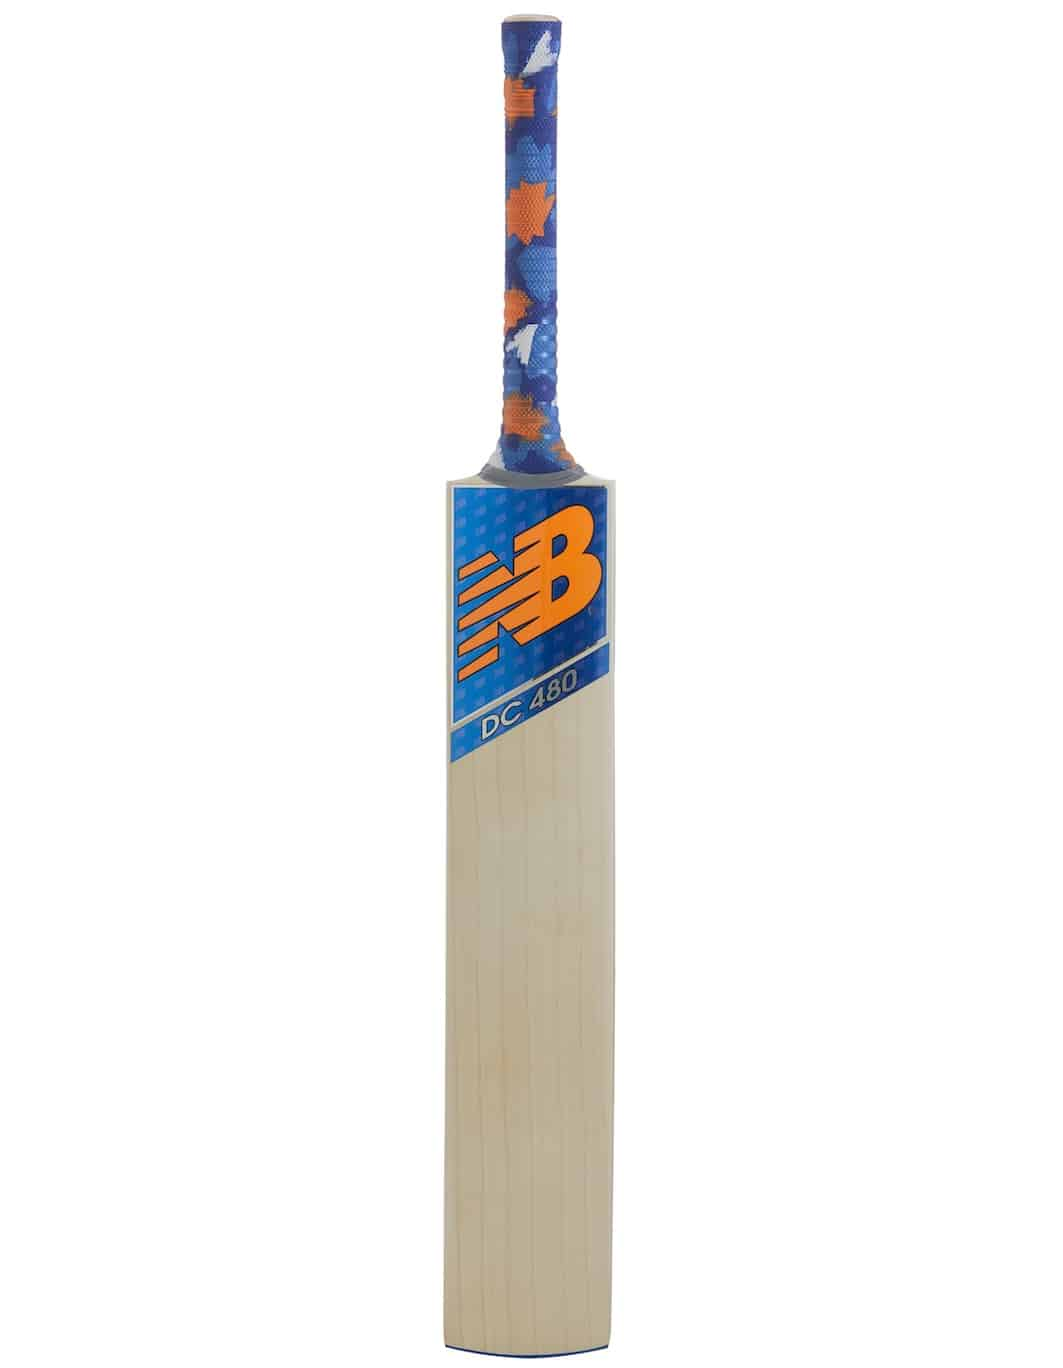 NB DC480SH cricket bat